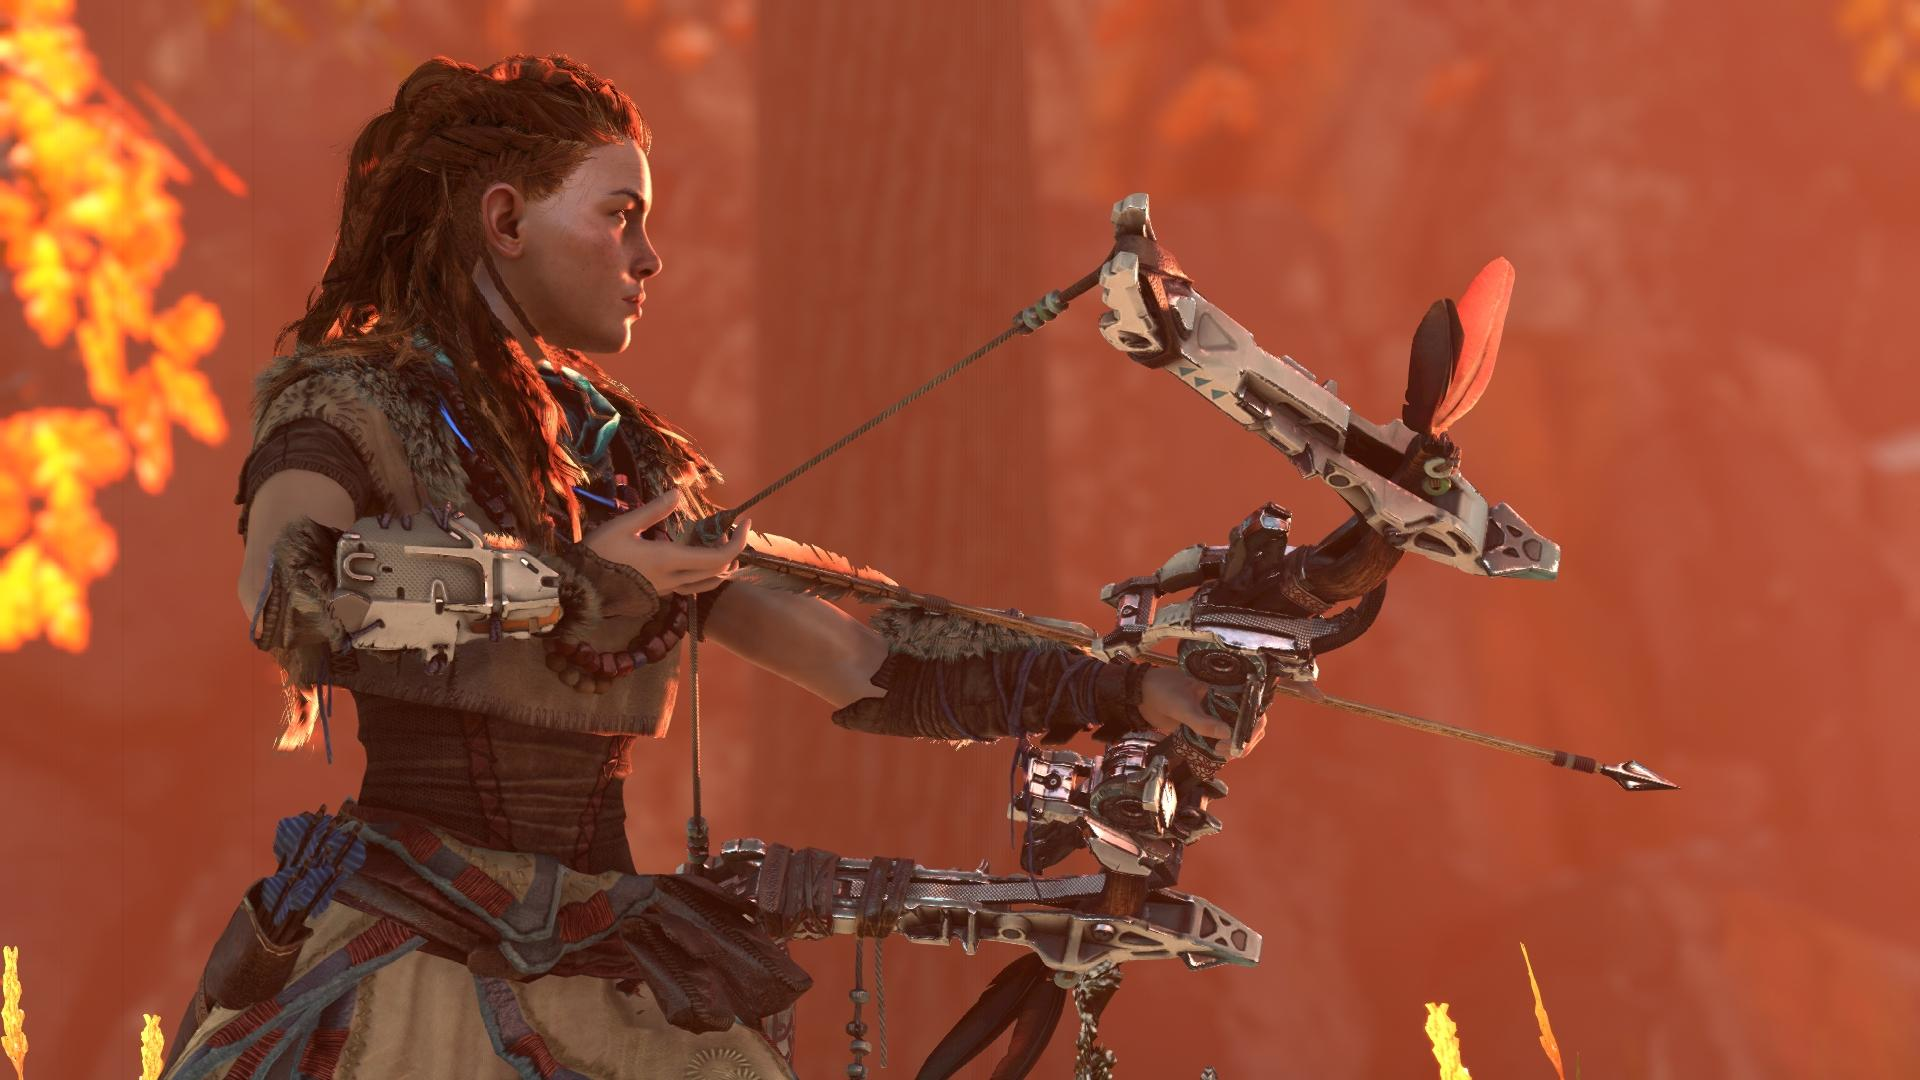 Aloy drawing her bow